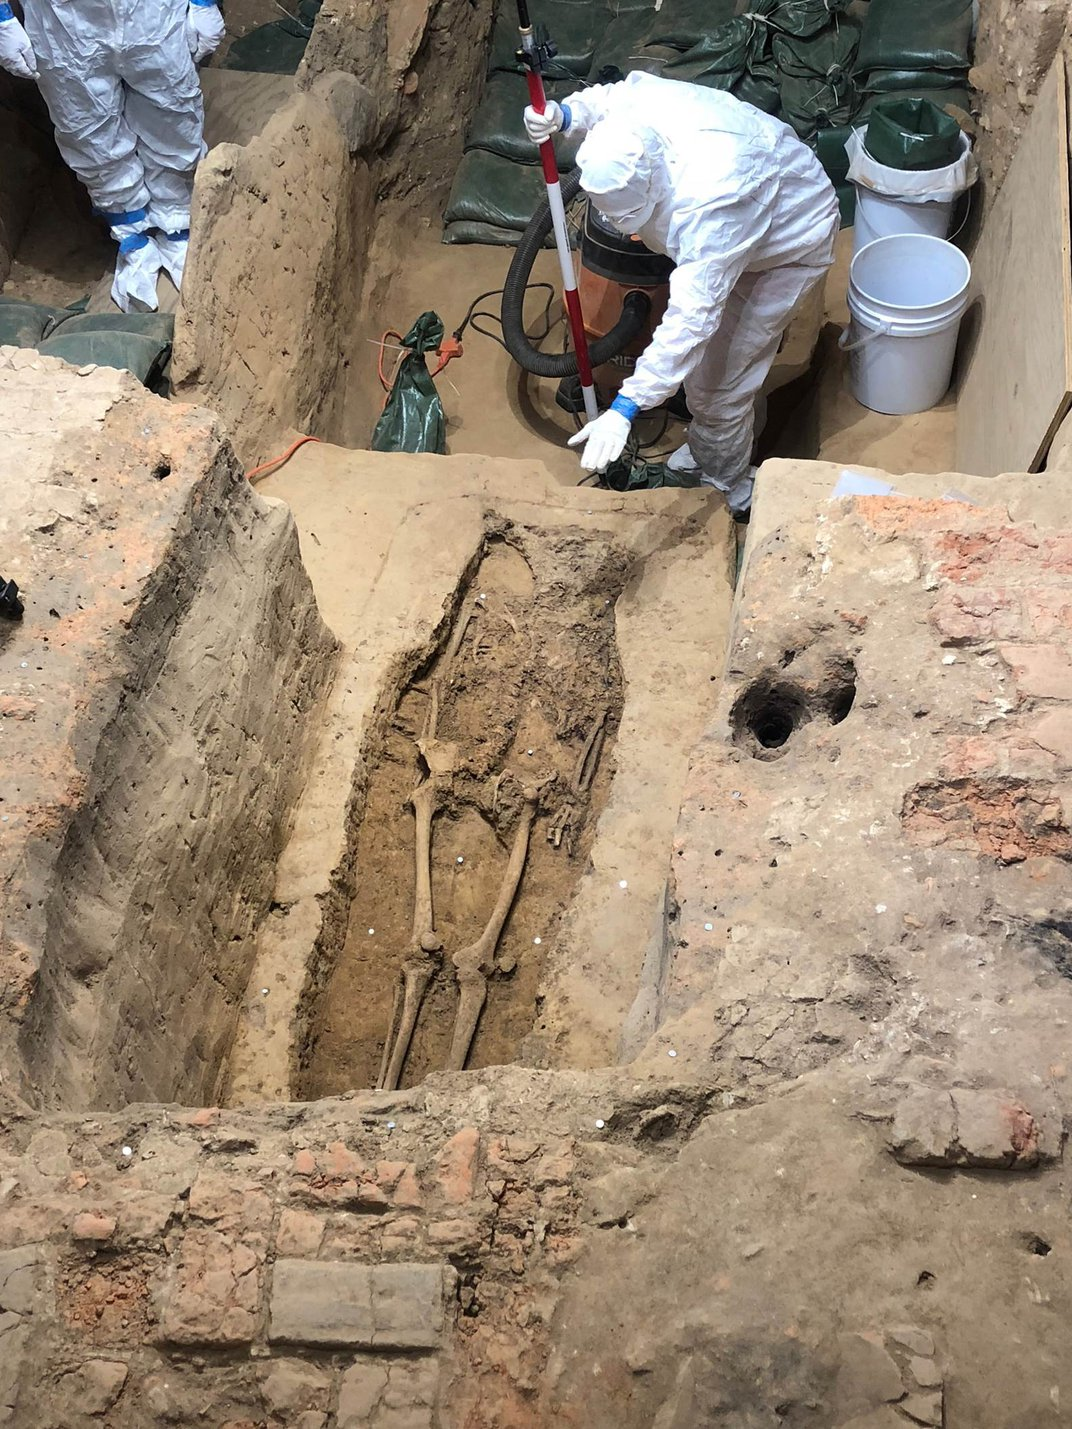 A Jamestown Skeleton is Unearthed, but Only Time—and Science—Will Reveal His True Identity